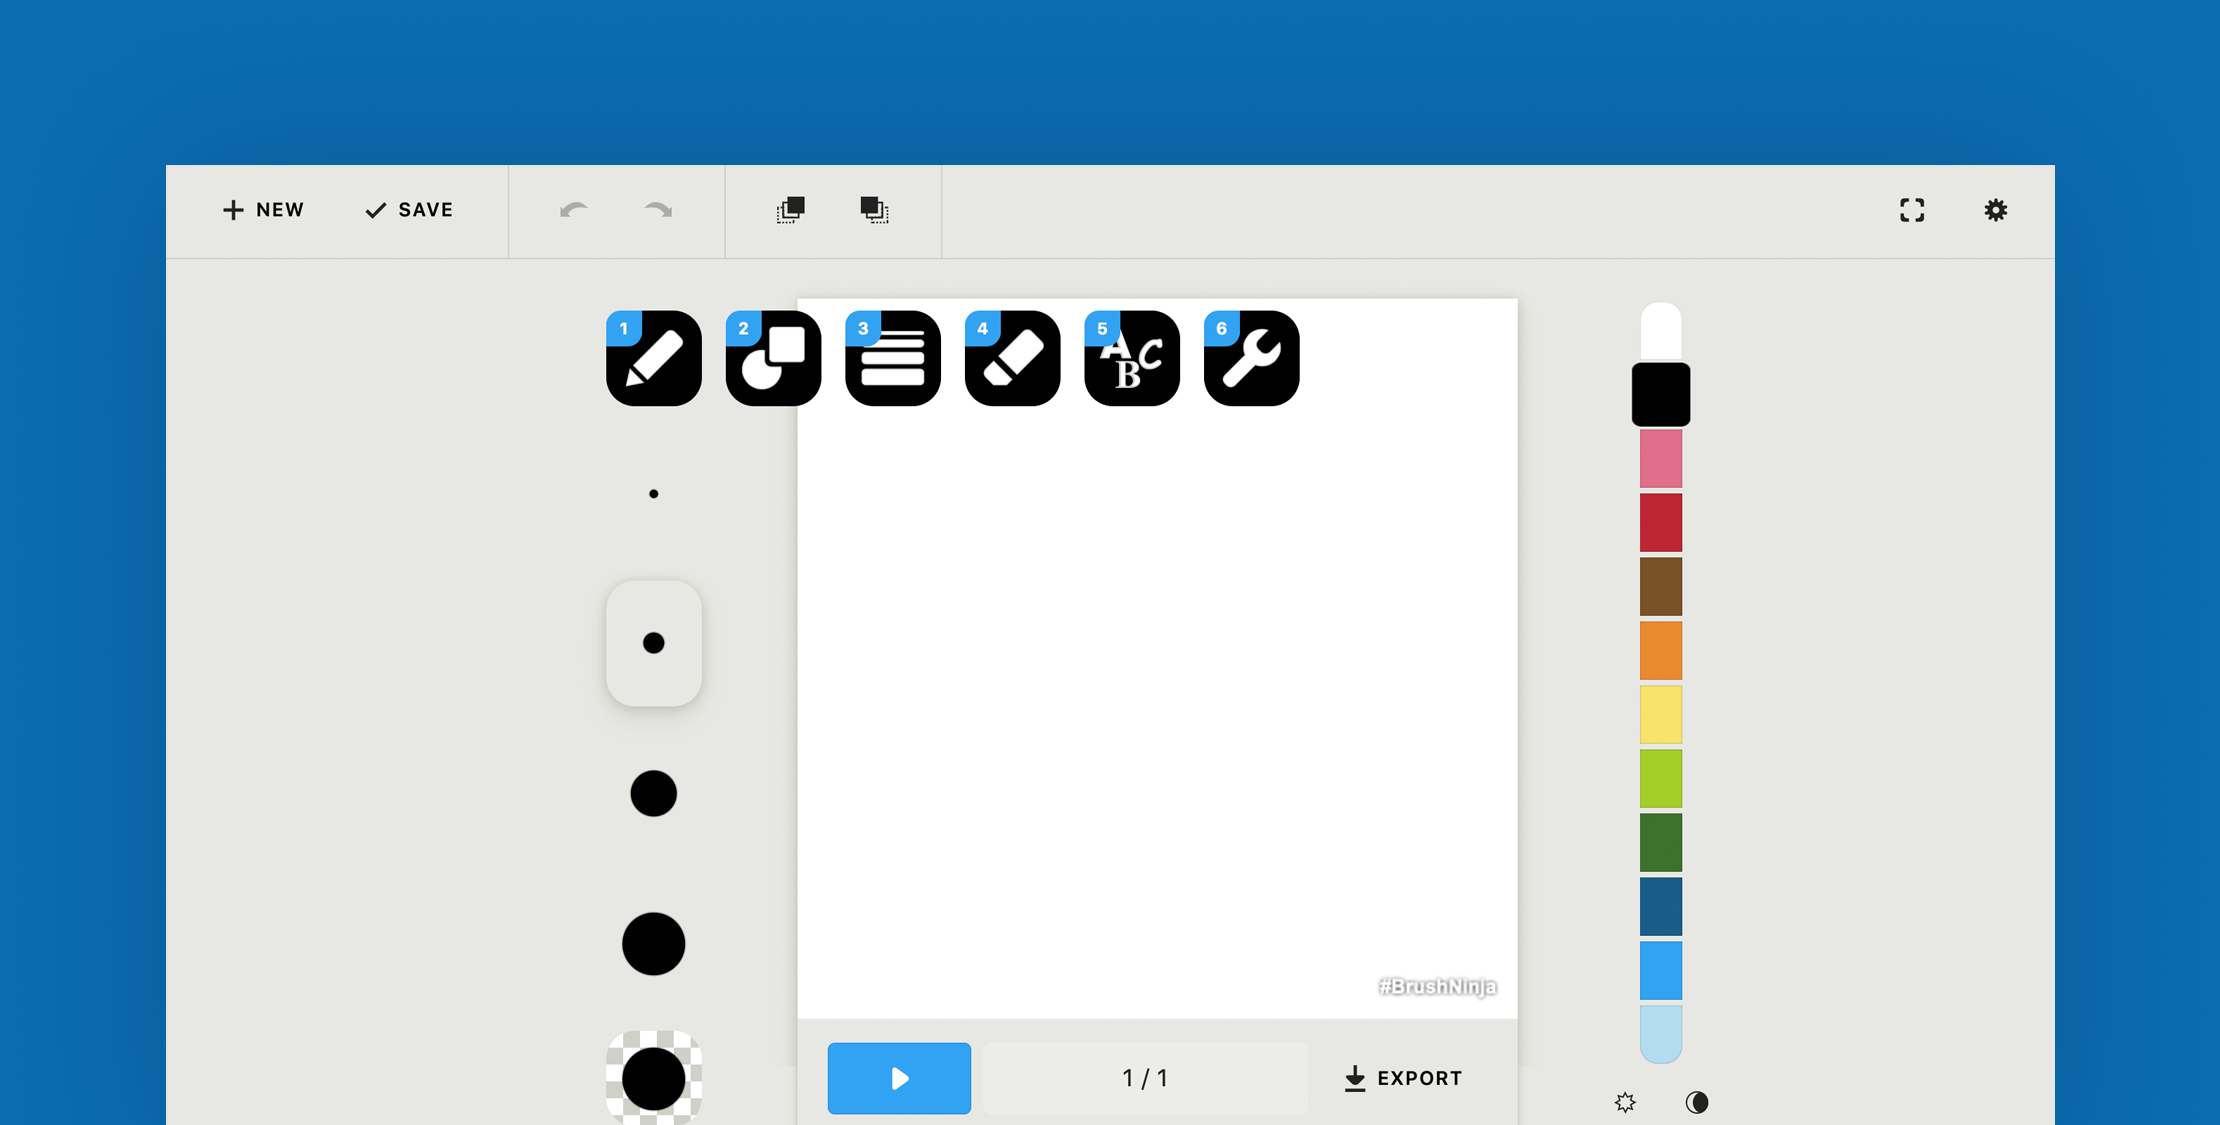 Create Animated Gif's With Brush Ninja